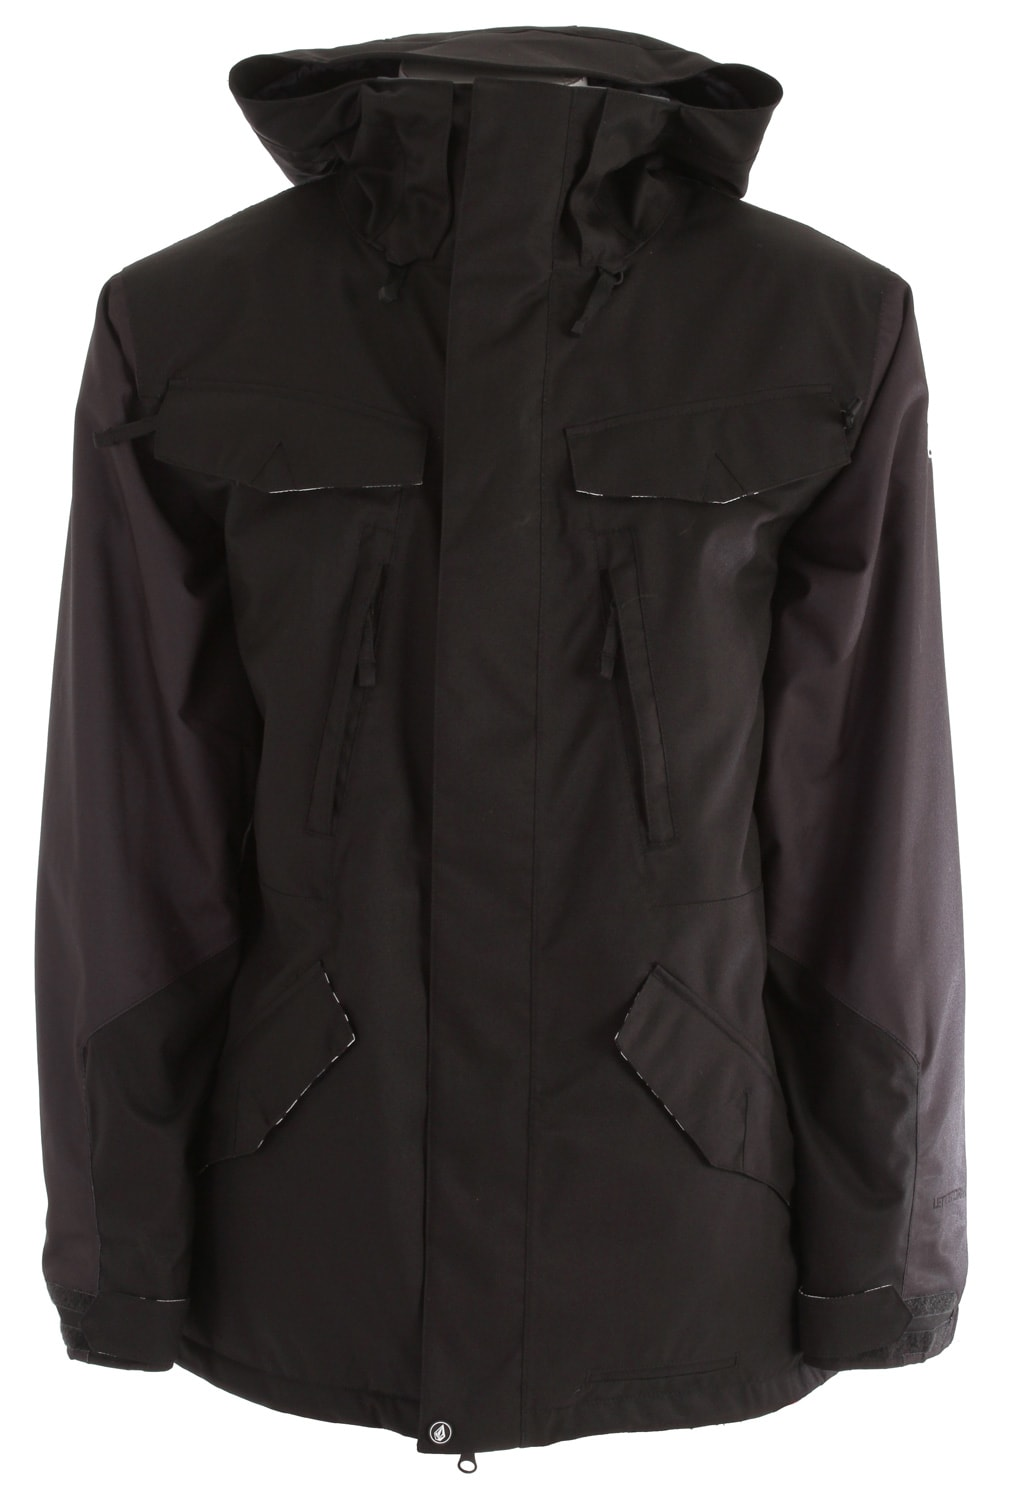 Shop for Volcom Union Snowboard Jacket Black - Men's